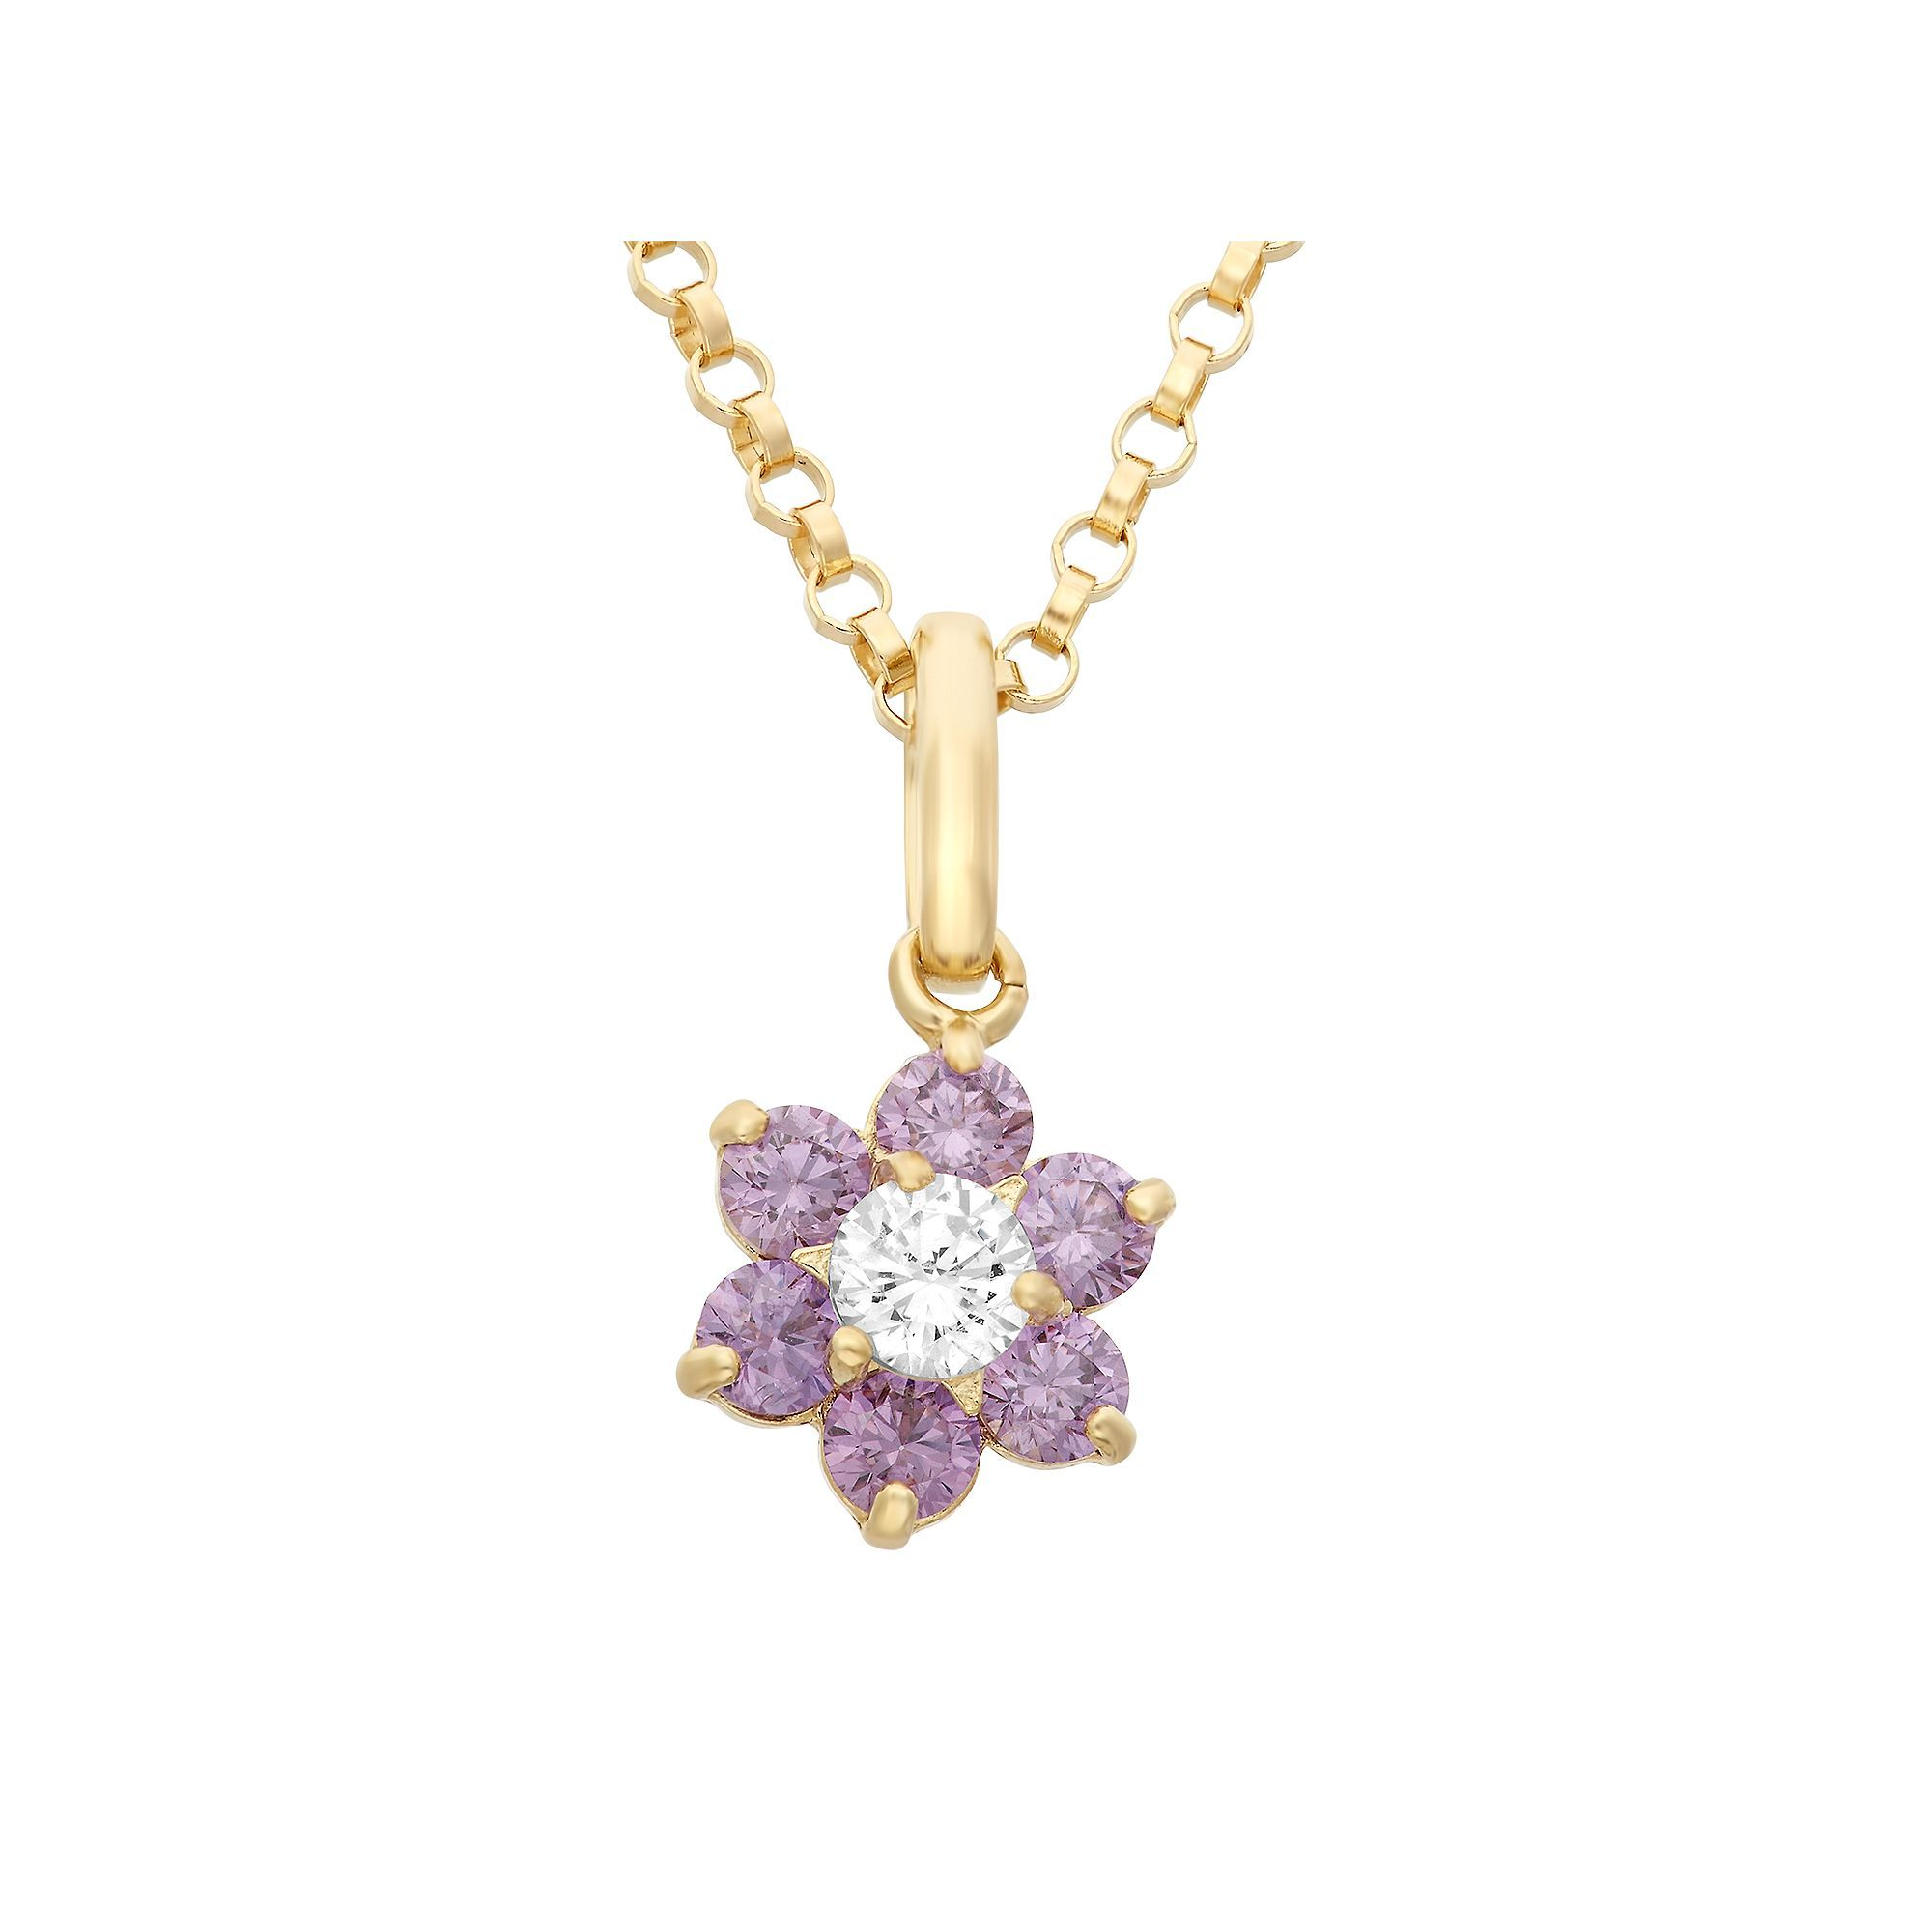 flower flowergirl categories lg jewelry pendant girl scott necklaces in necklace gold kendra